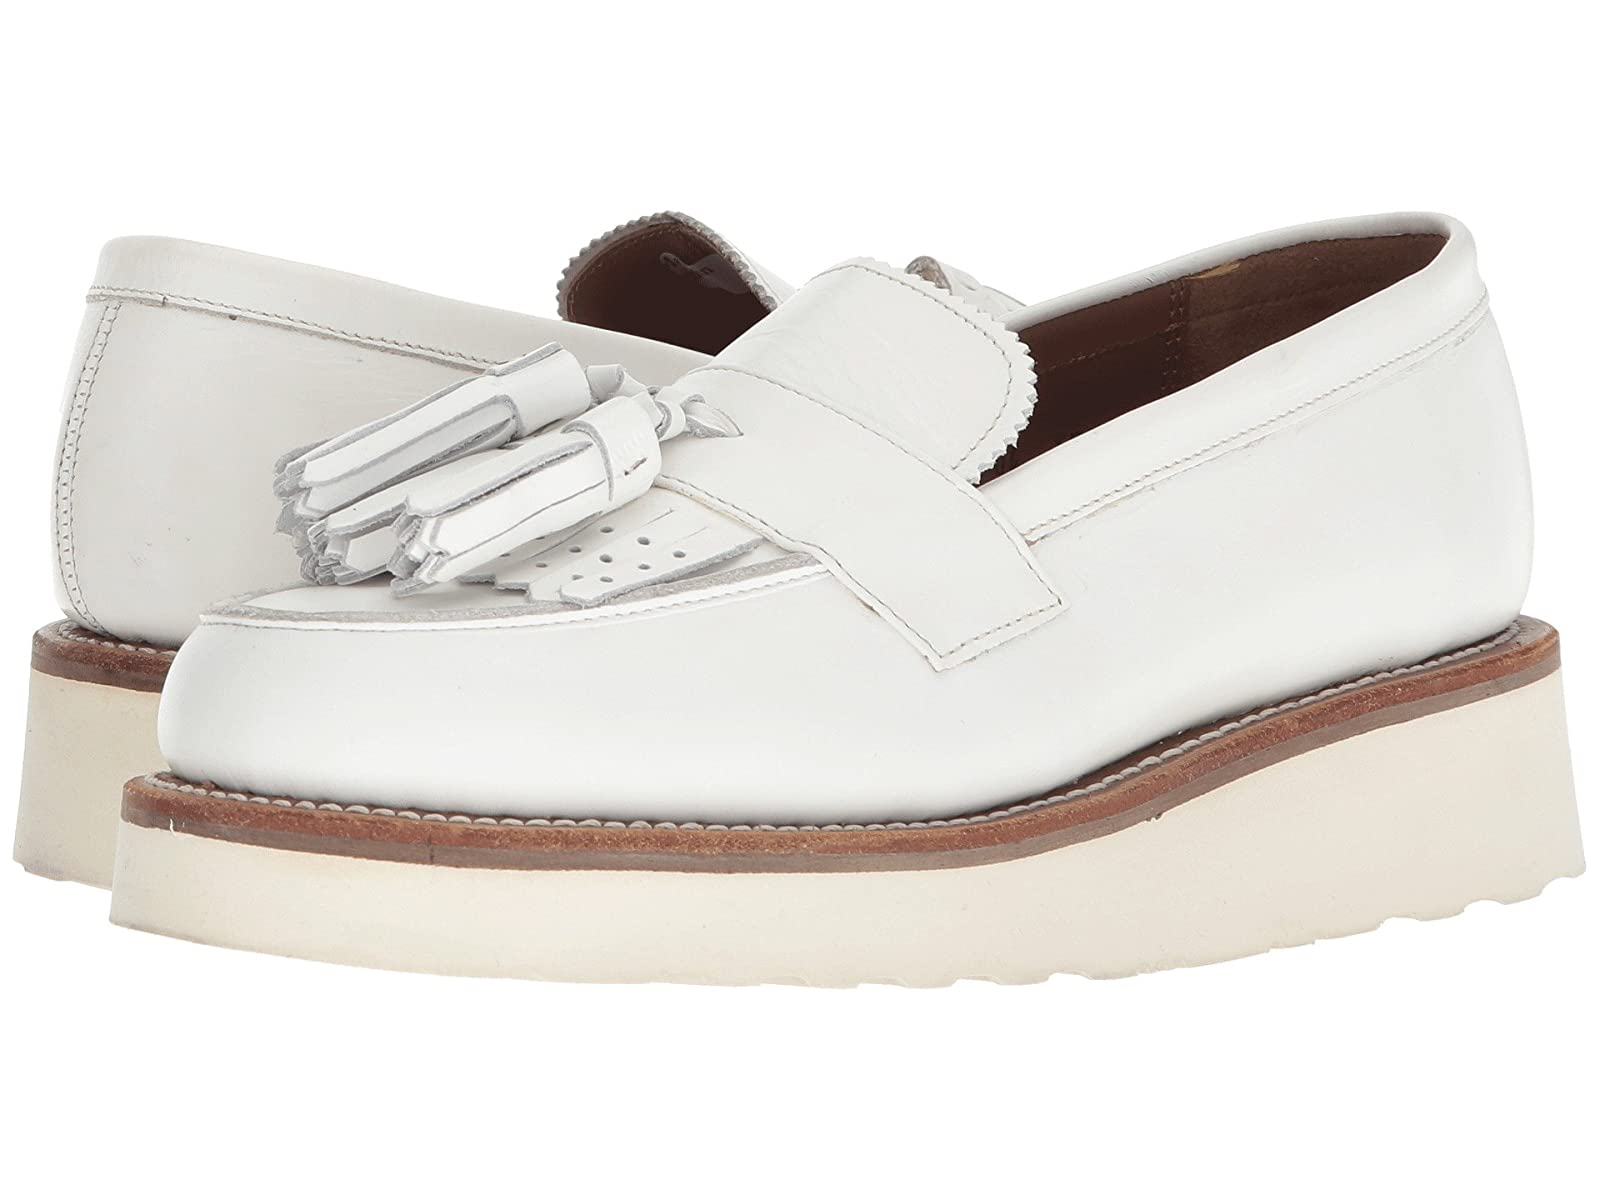 Grenson Clara LoaferAtmospheric grades have affordable shoes